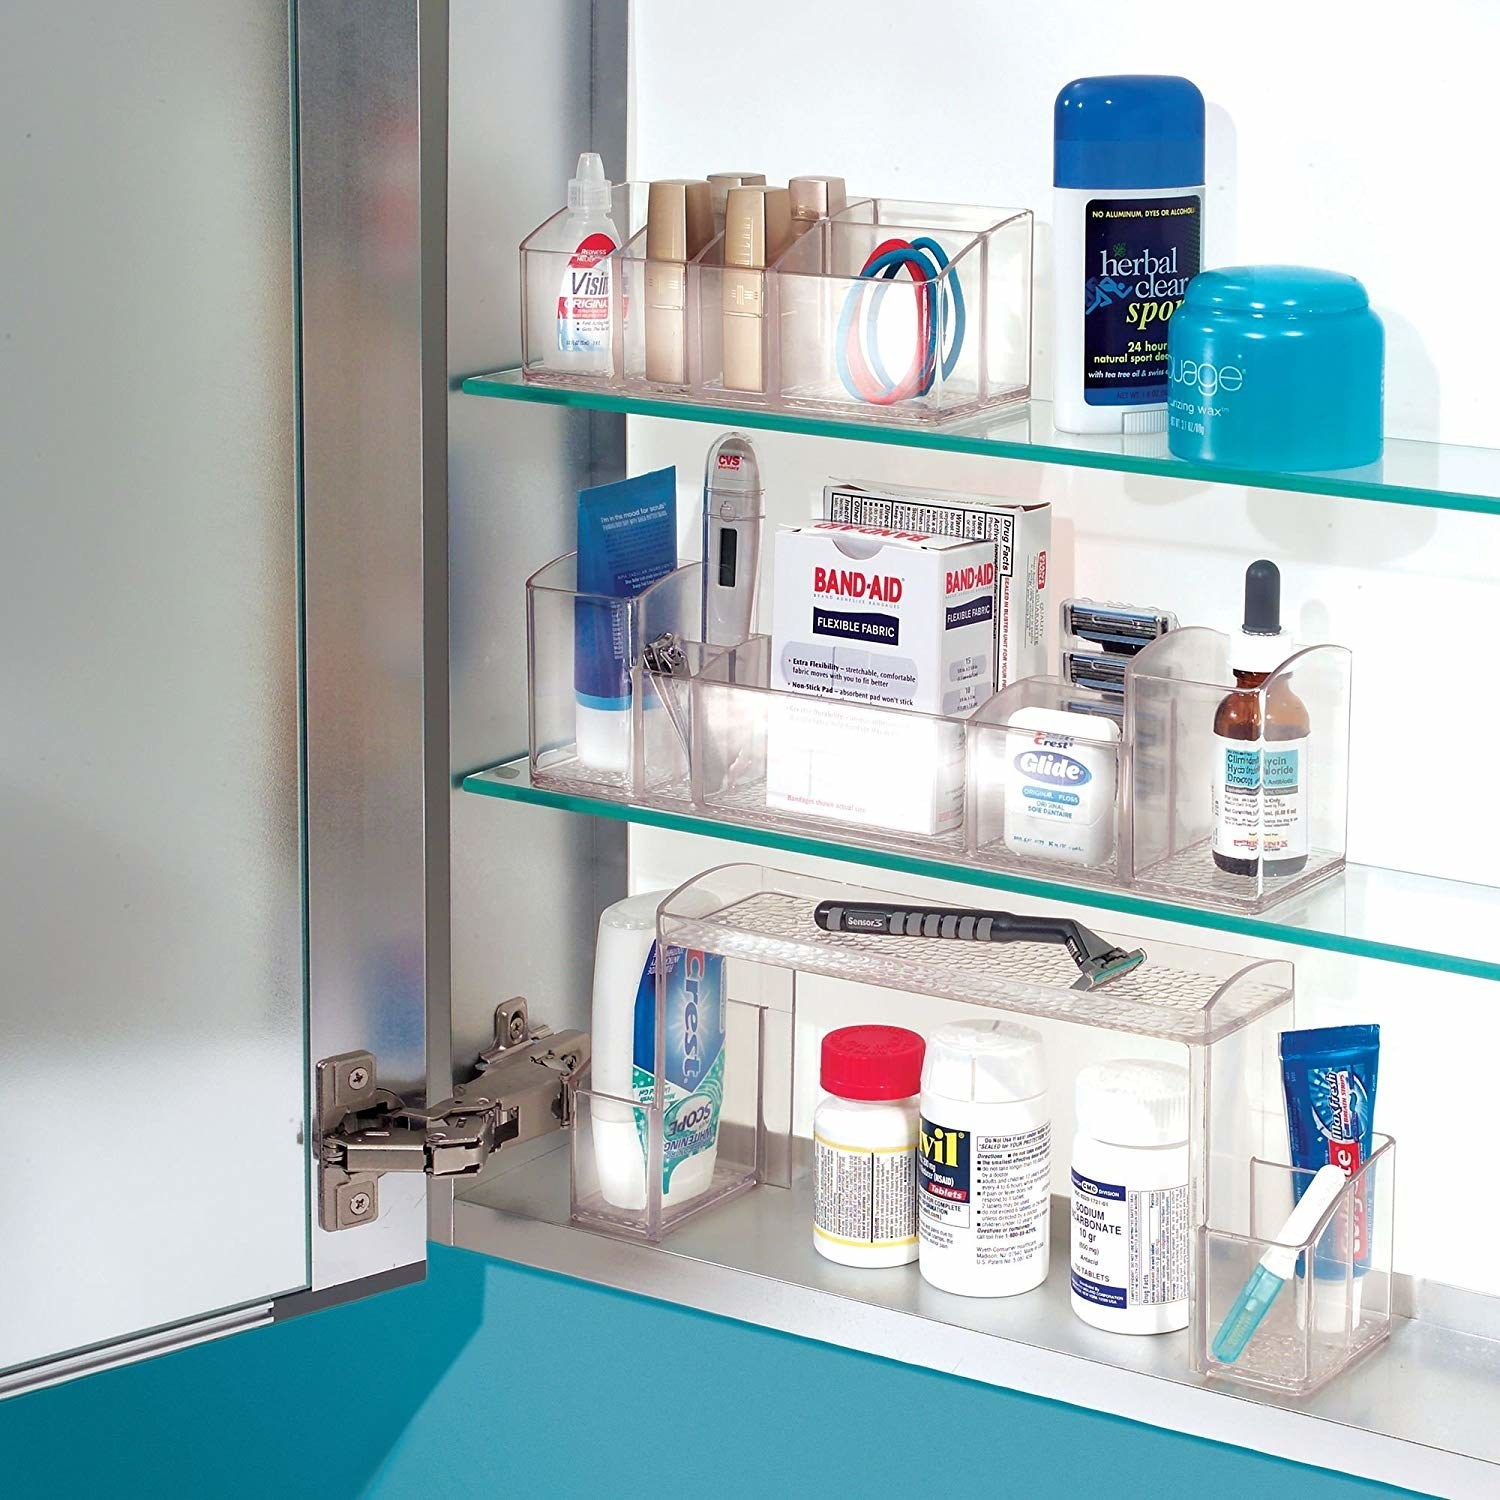 The organizer being used in a medicine cabinet